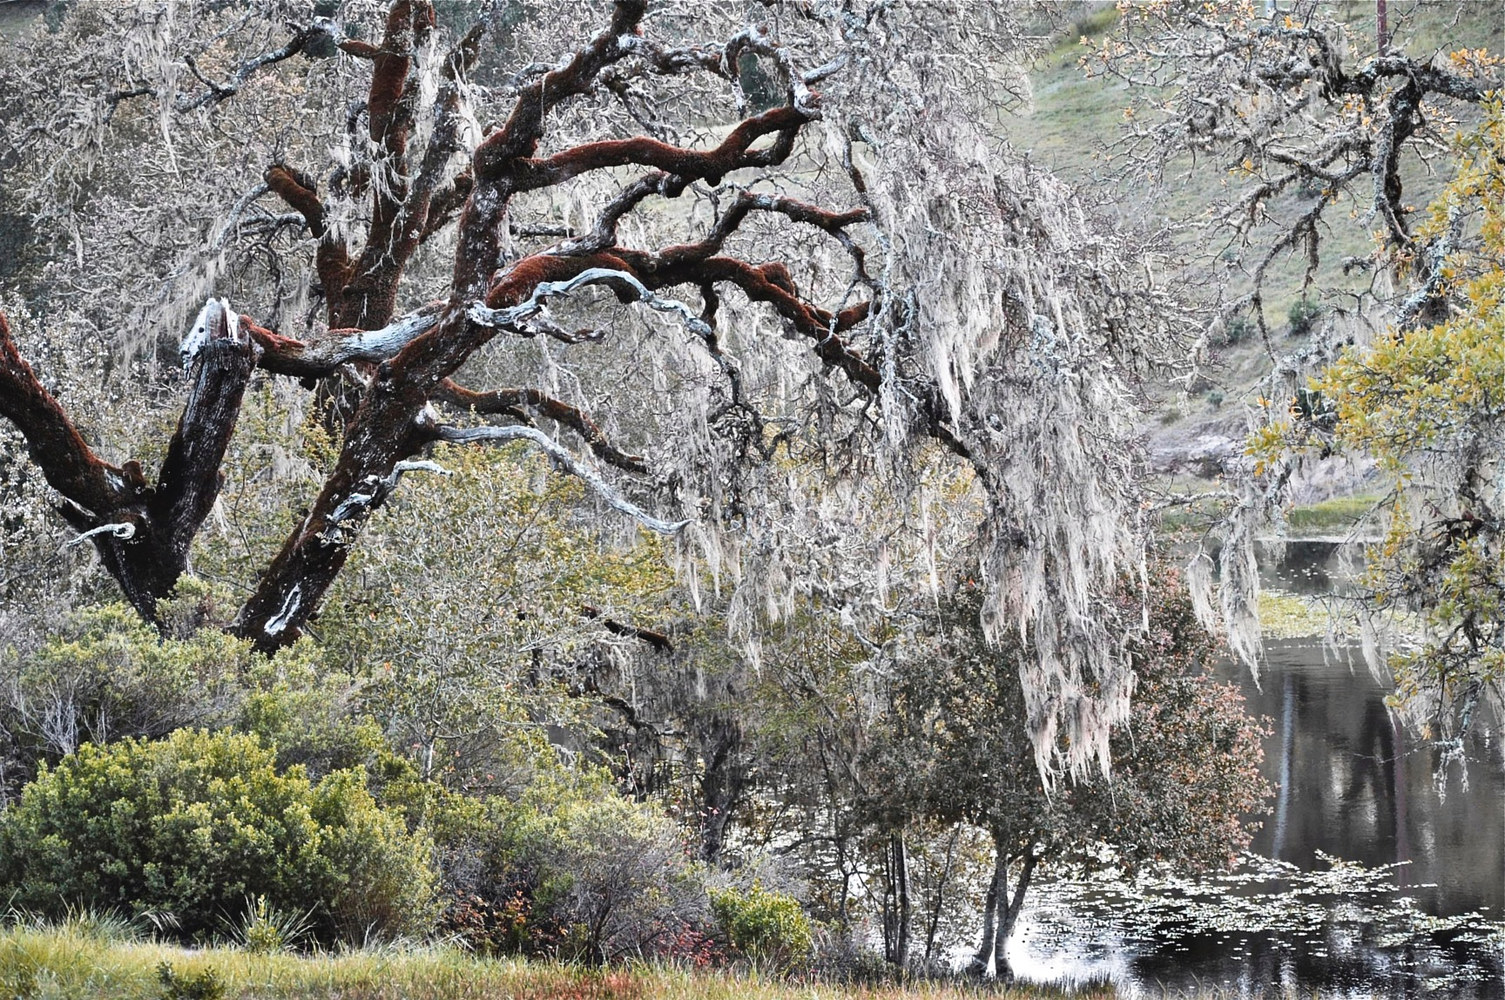 SPRING OAKS by Joeann Edmonds-Matthew